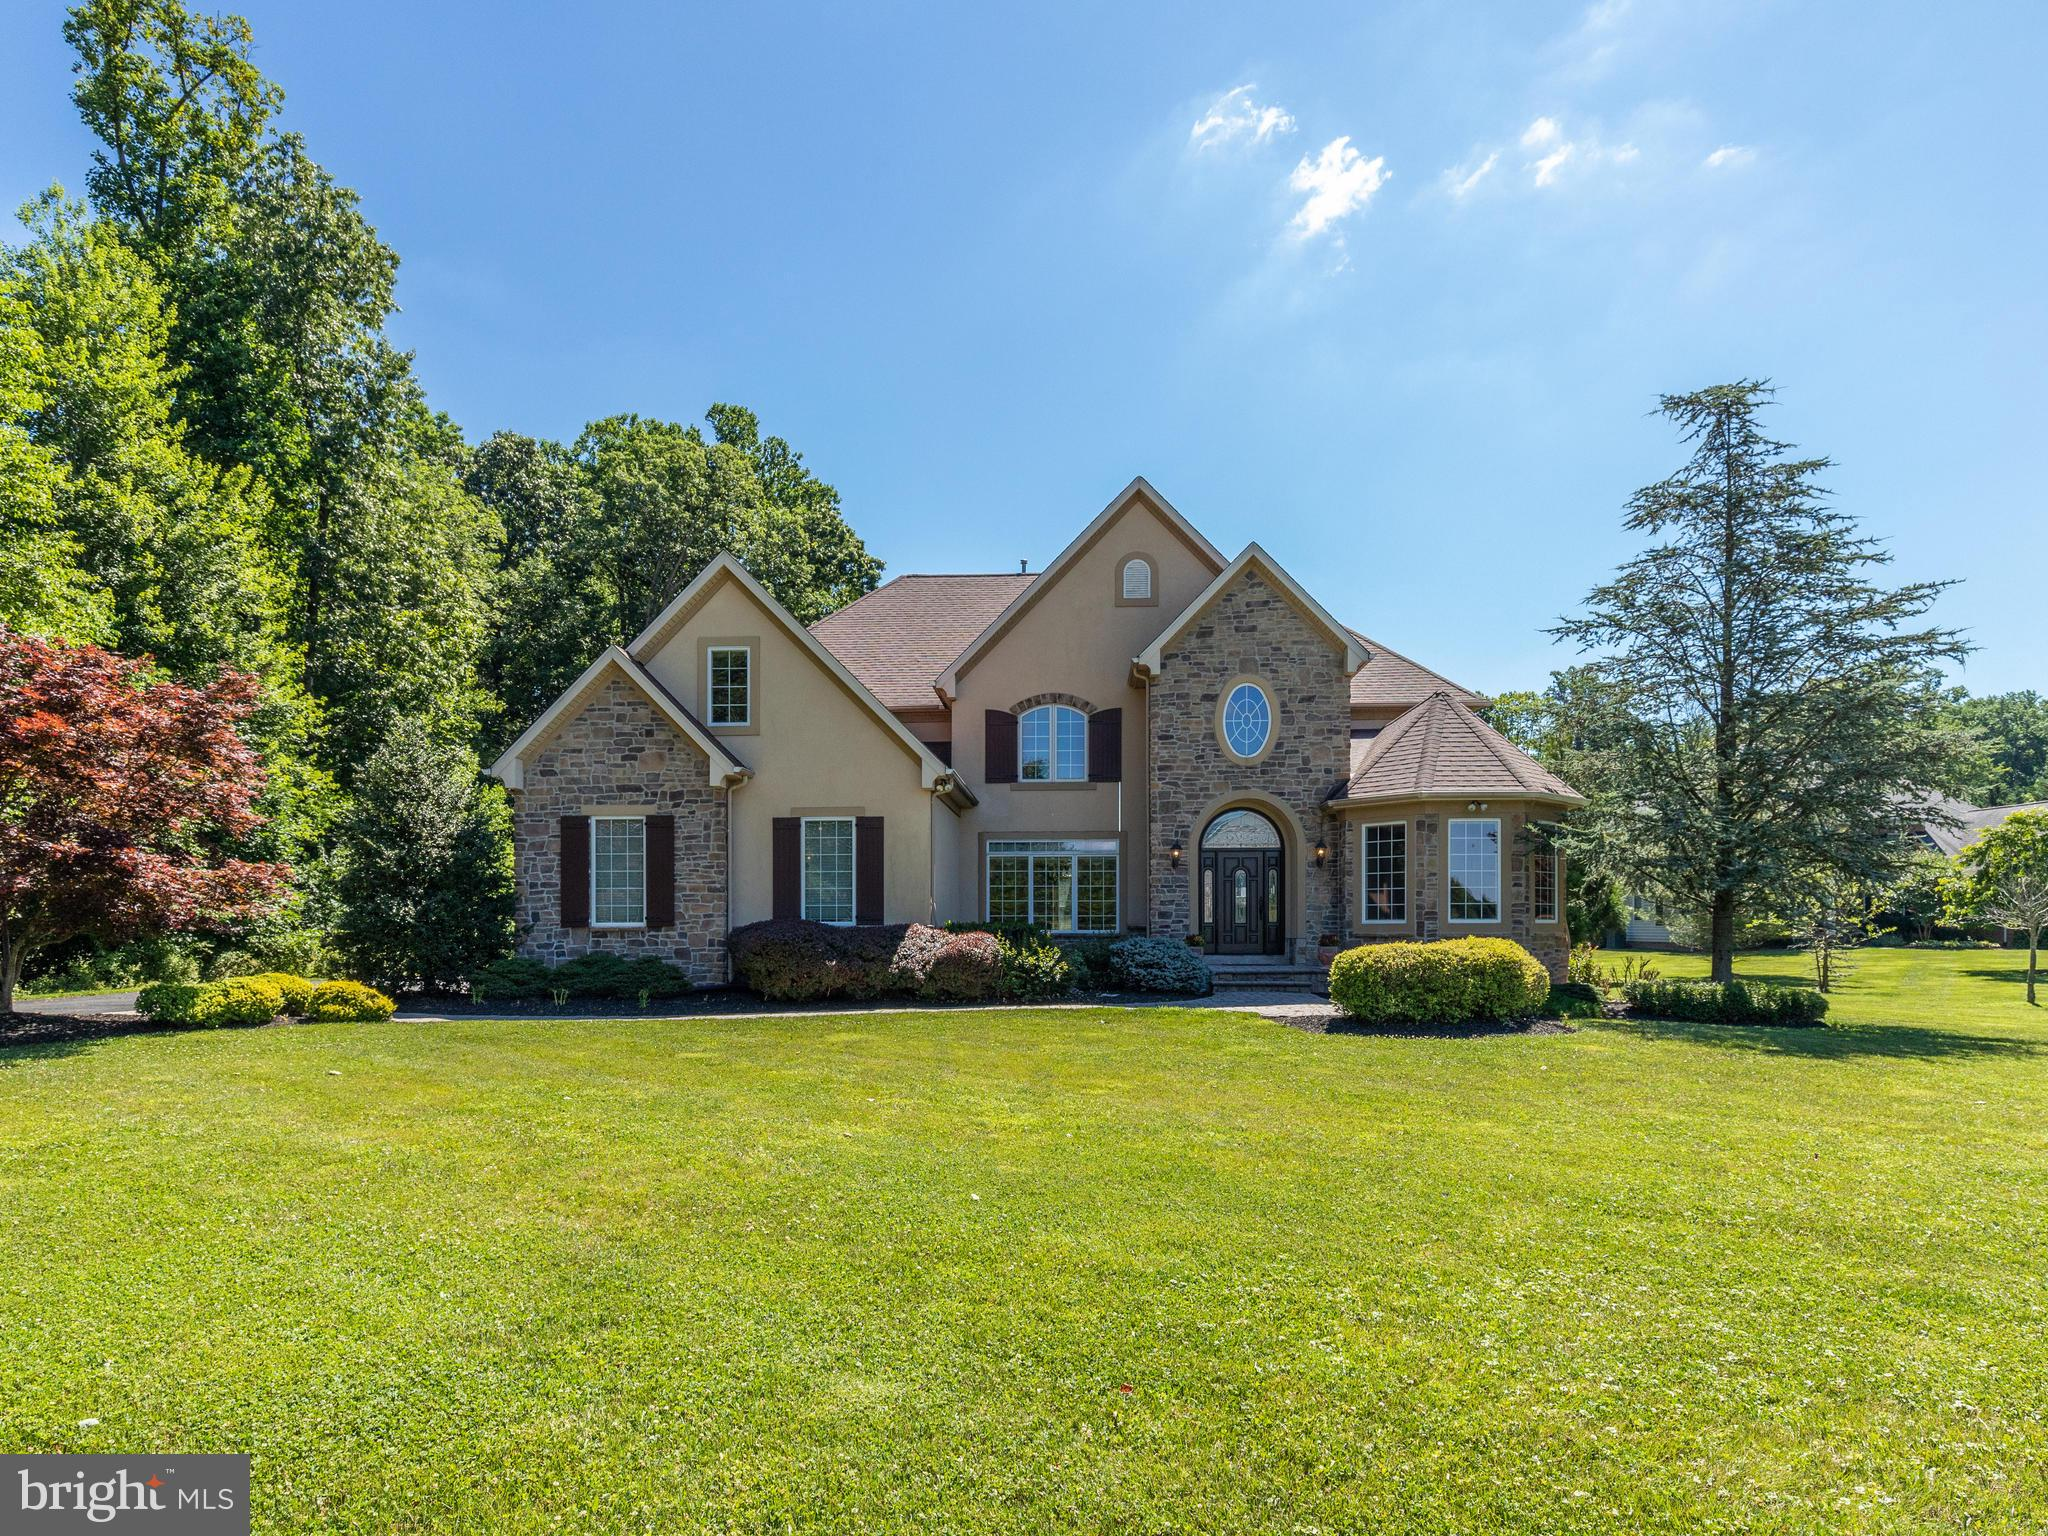 12845 DOVER ROAD, REISTERSTOWN, MD 21136